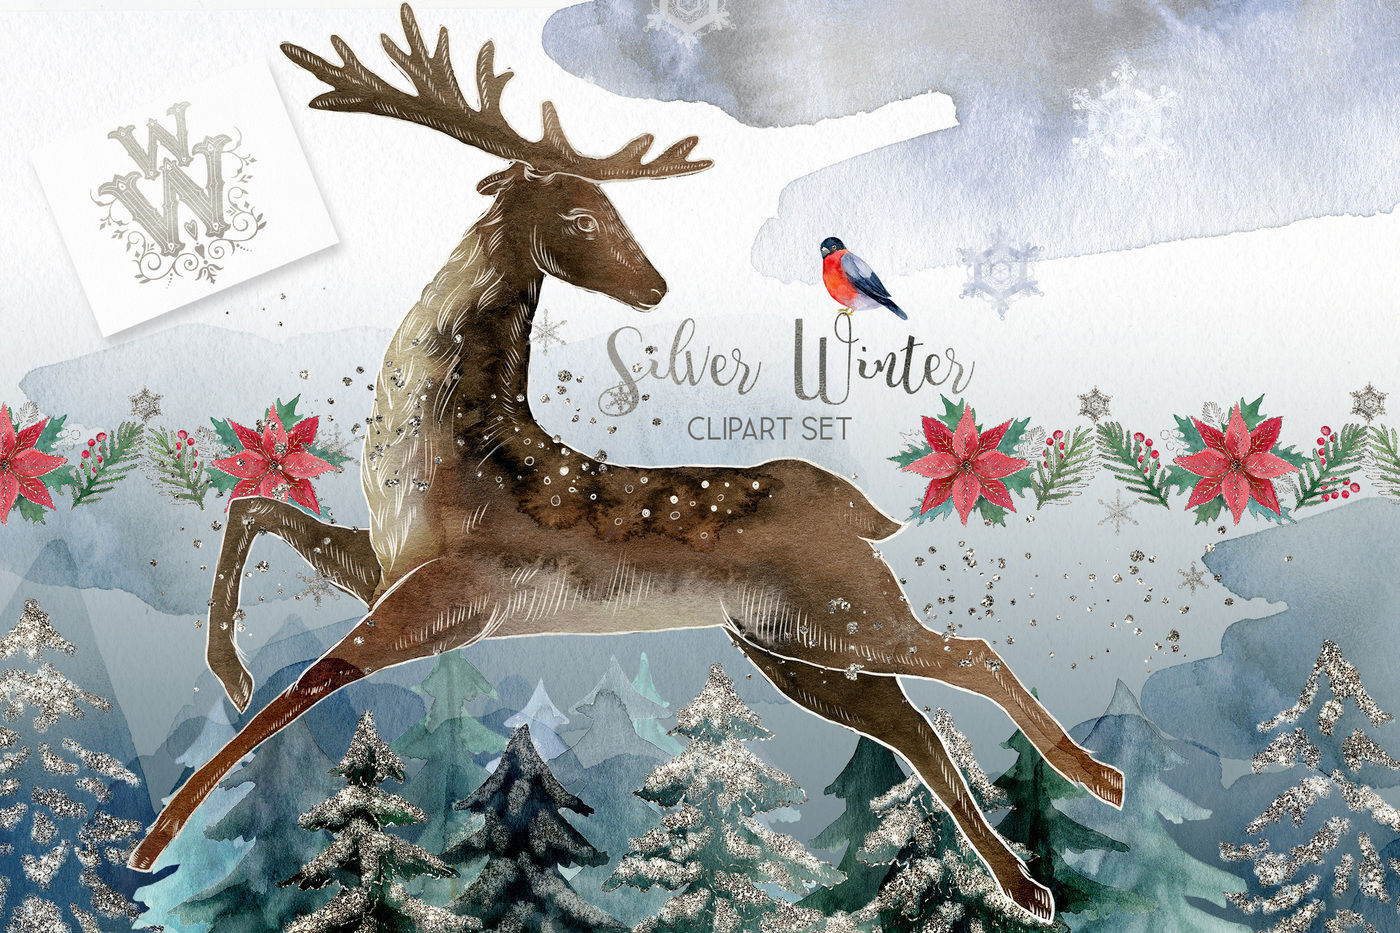 Silver winter clipart with deer By WonderWonder.